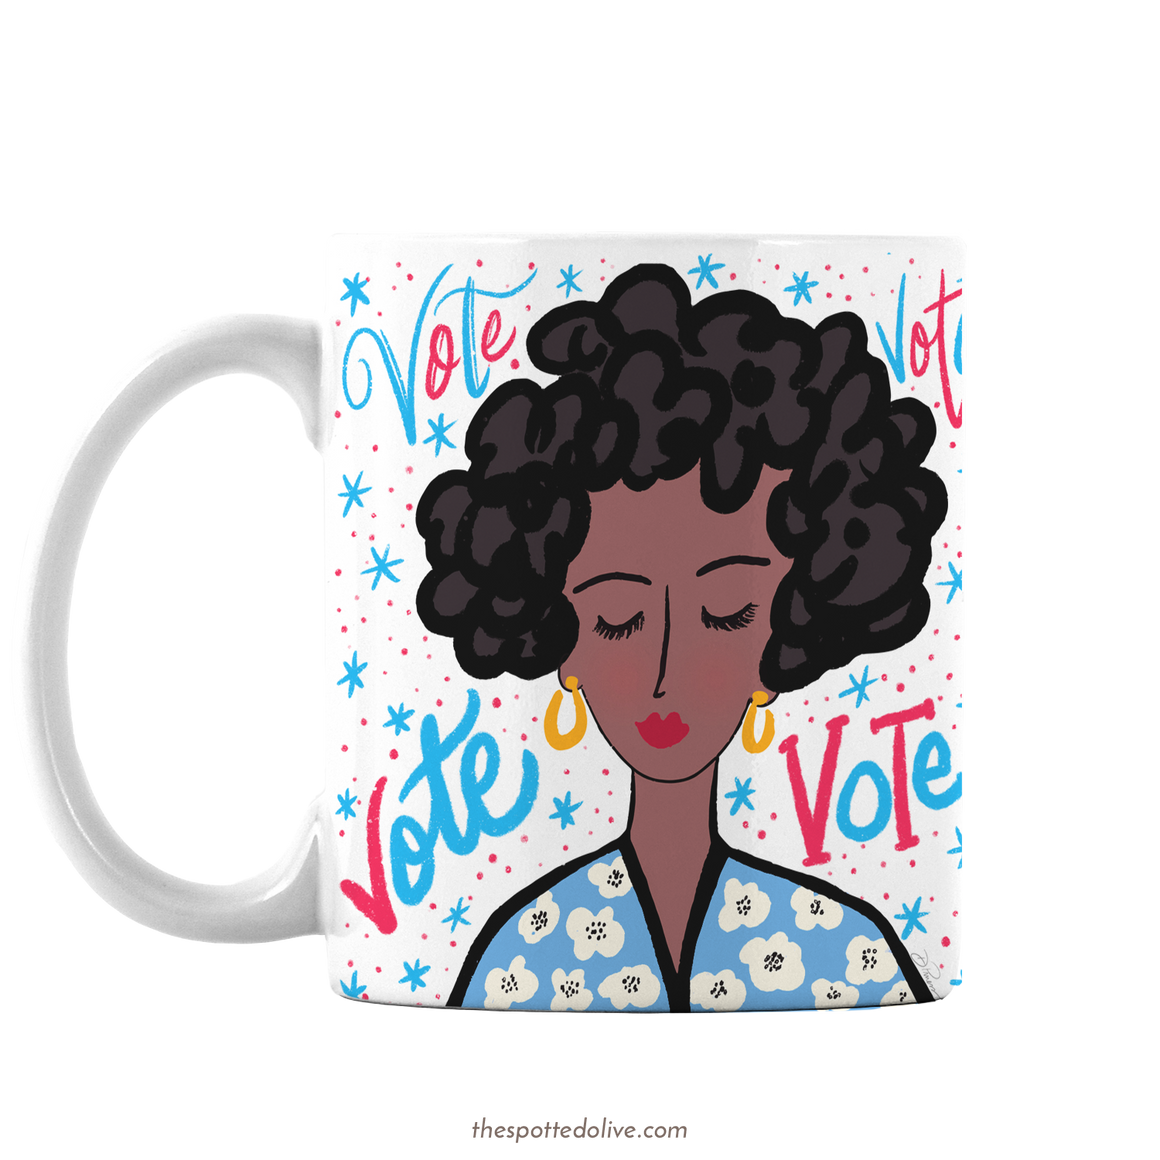 Vote Lady Coffee Mug by The Spotted Olive - Left